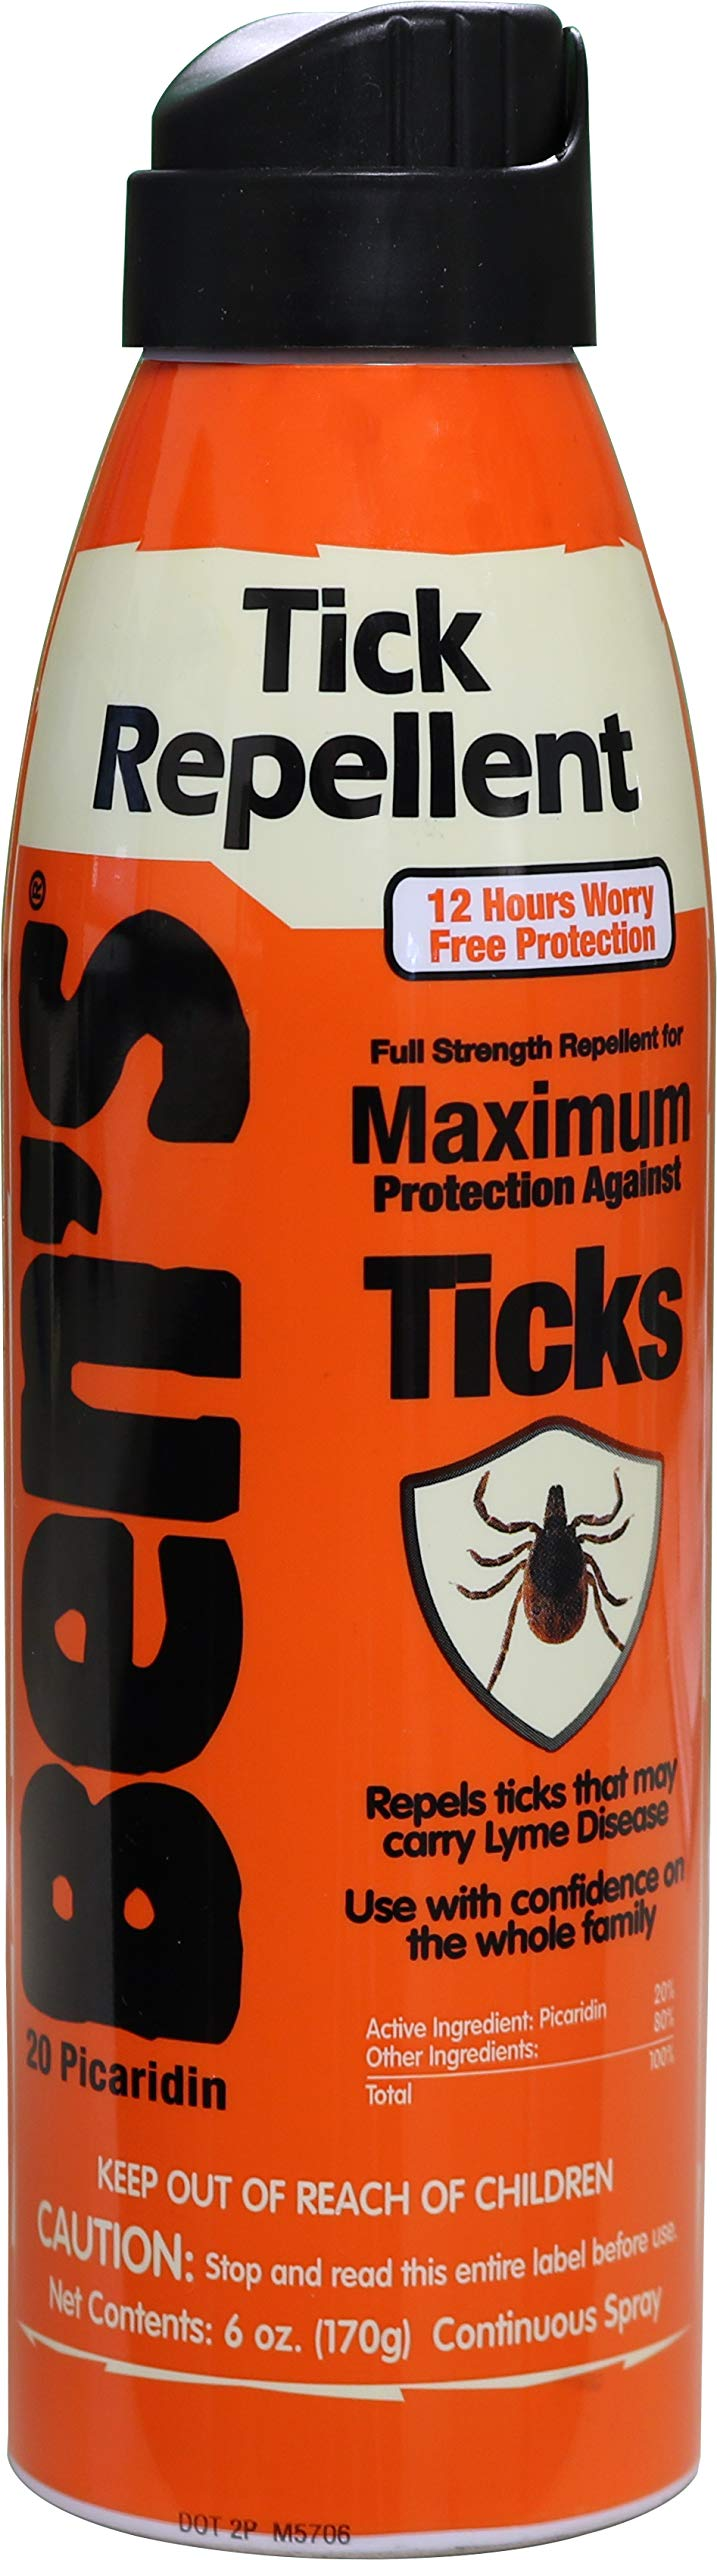 Bens Tick Repellent Picaridin 6oz